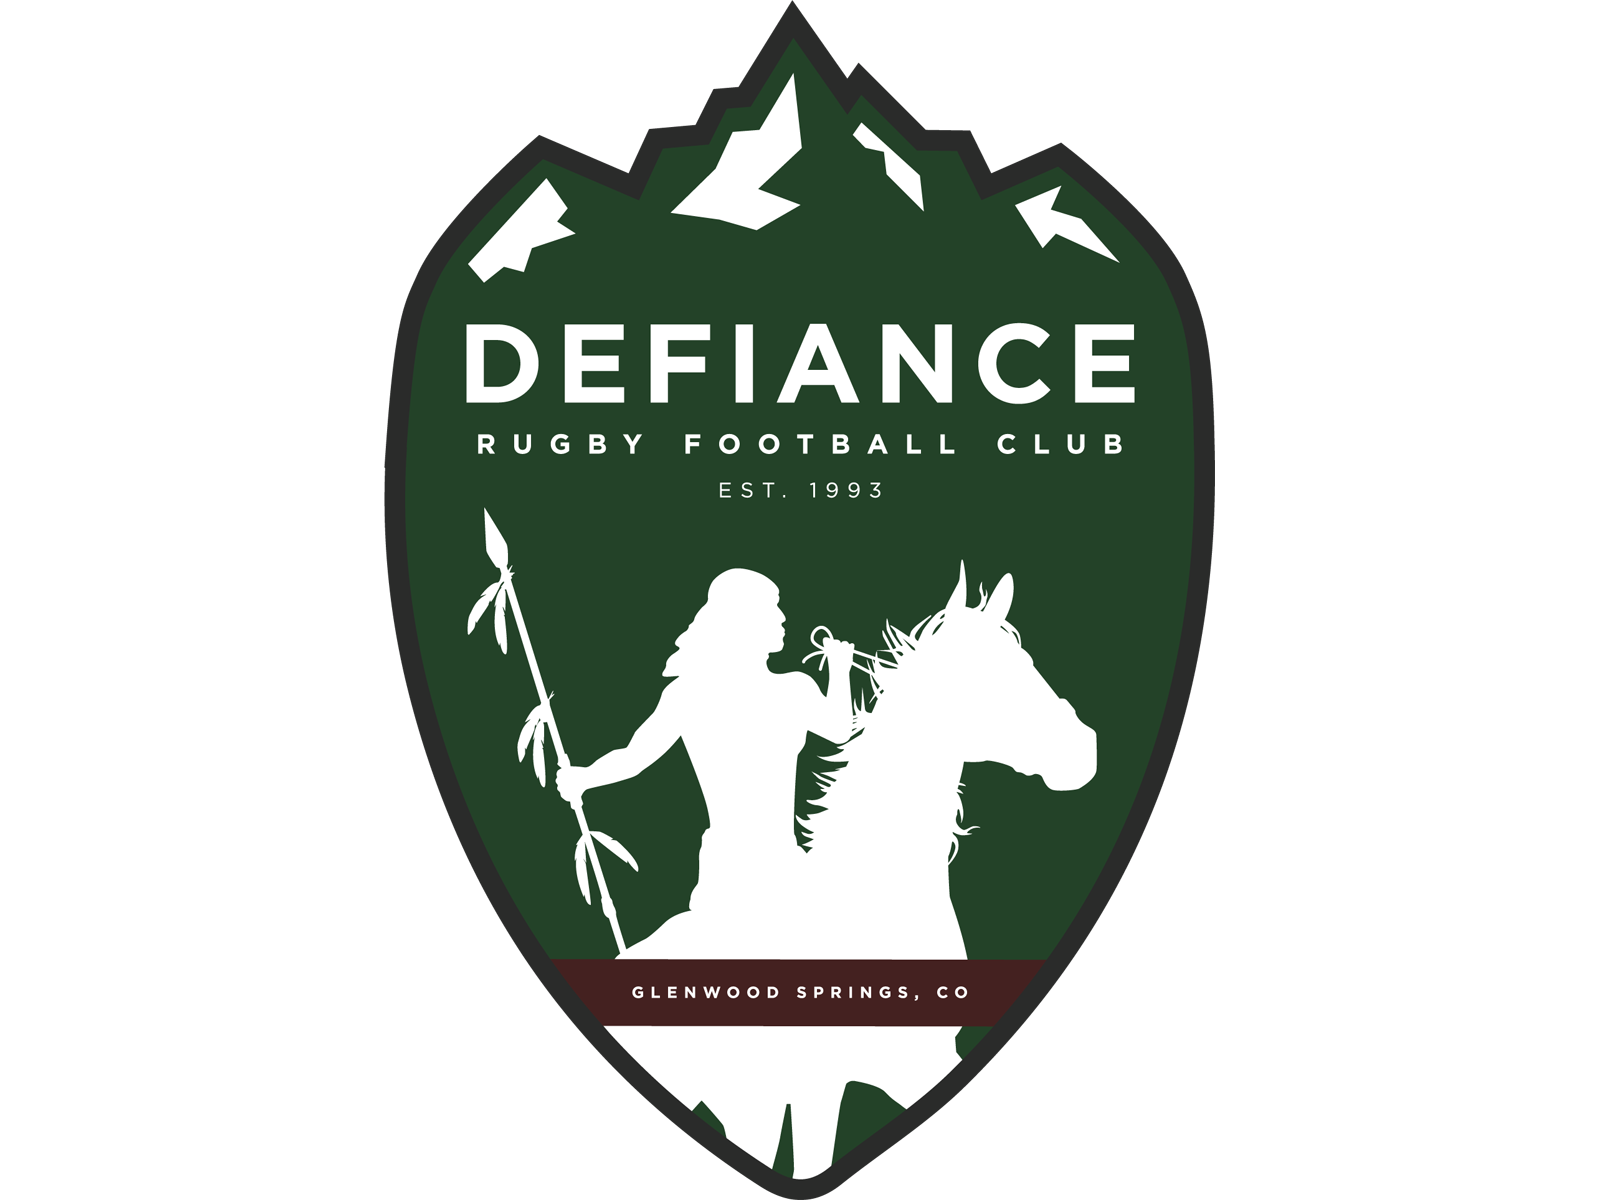 Defiance Rugby